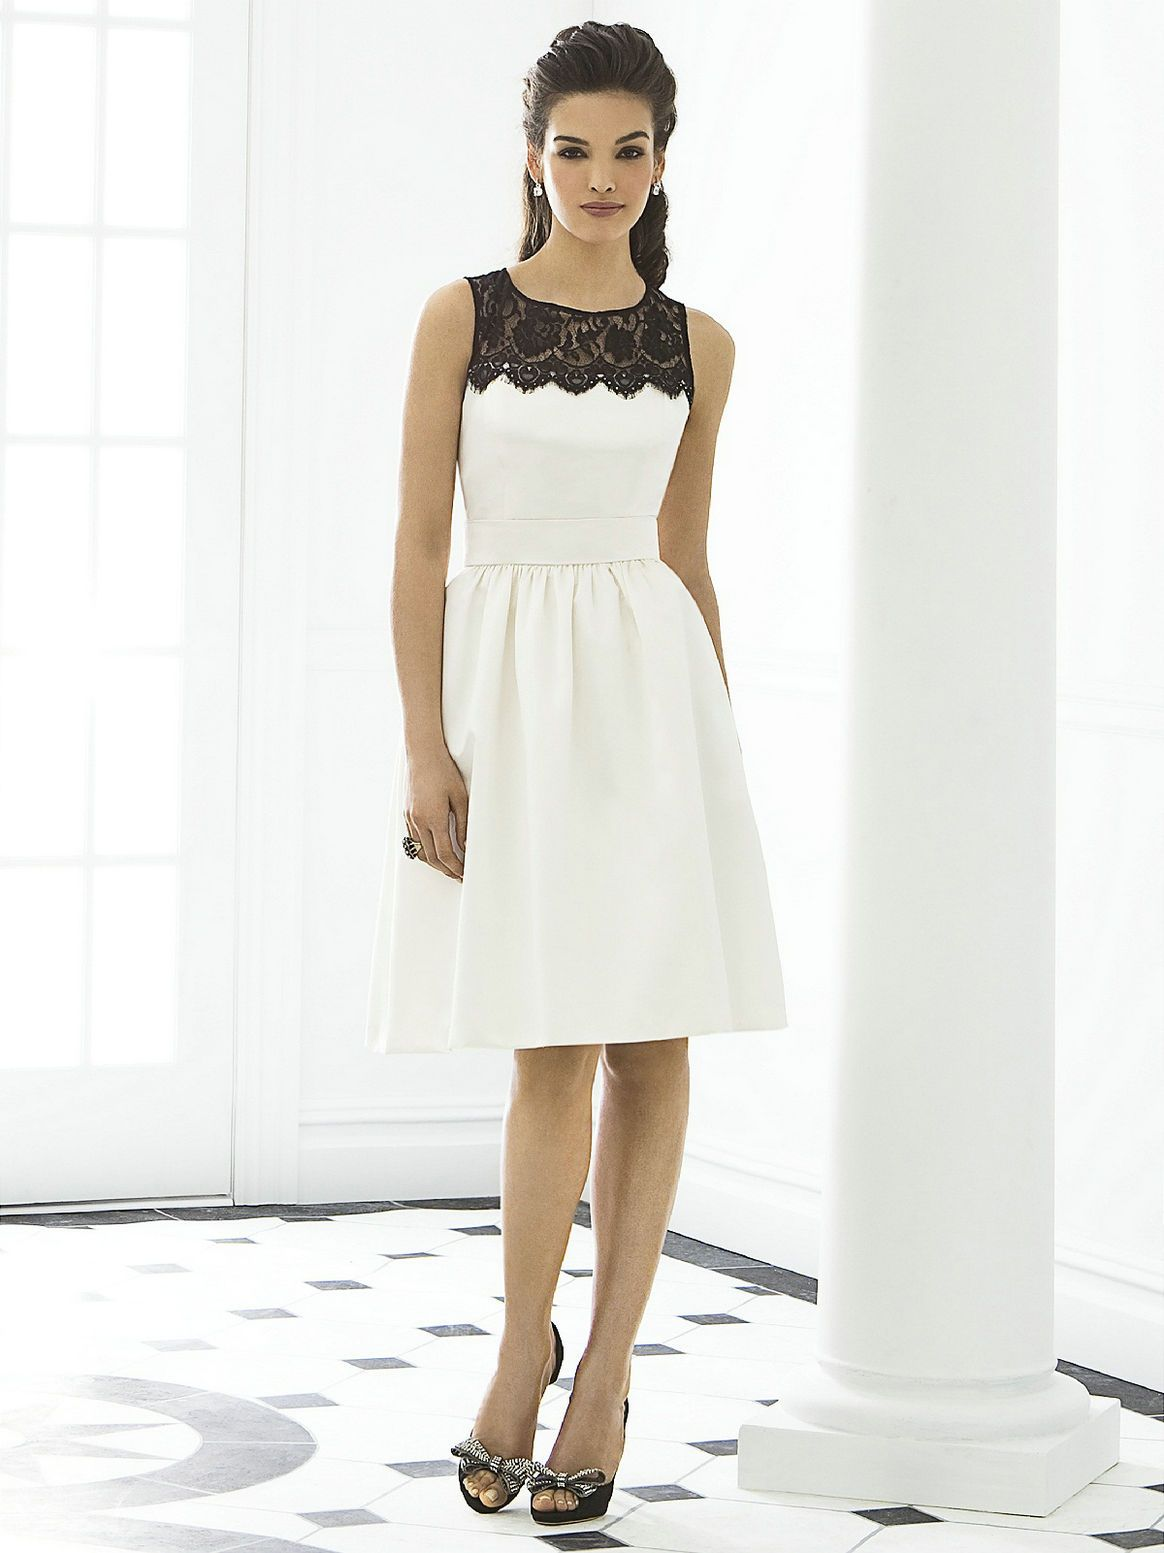 11 Ways To Look White Hot At A Wedding Confirmation Dresses - Wedding Dresses For Teenage Girl